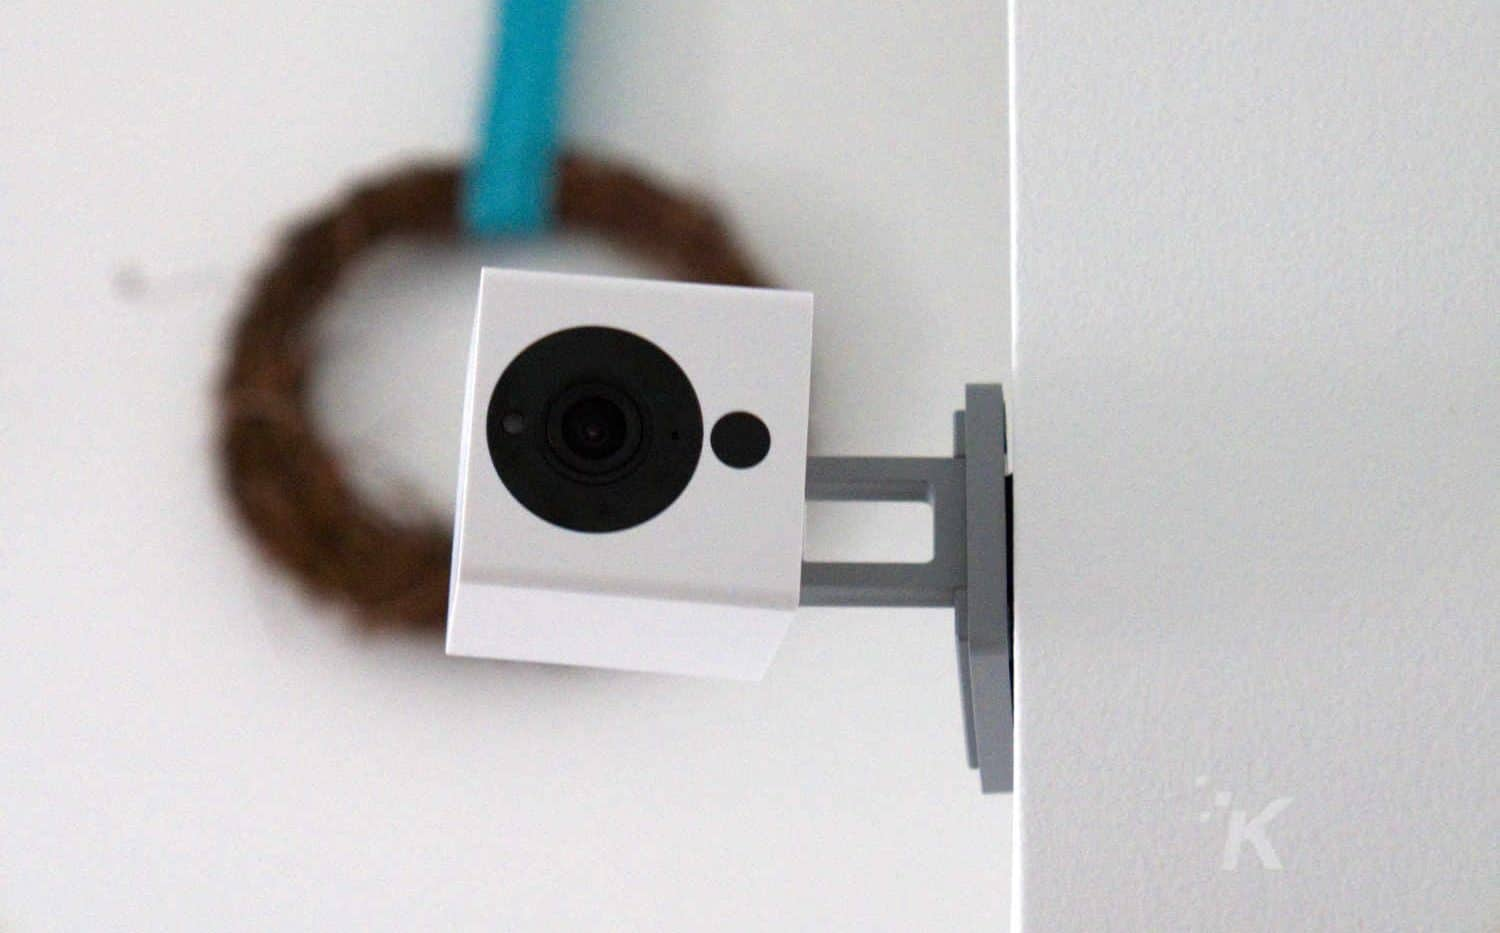 Review: The WyzeCam 2 0 security camera